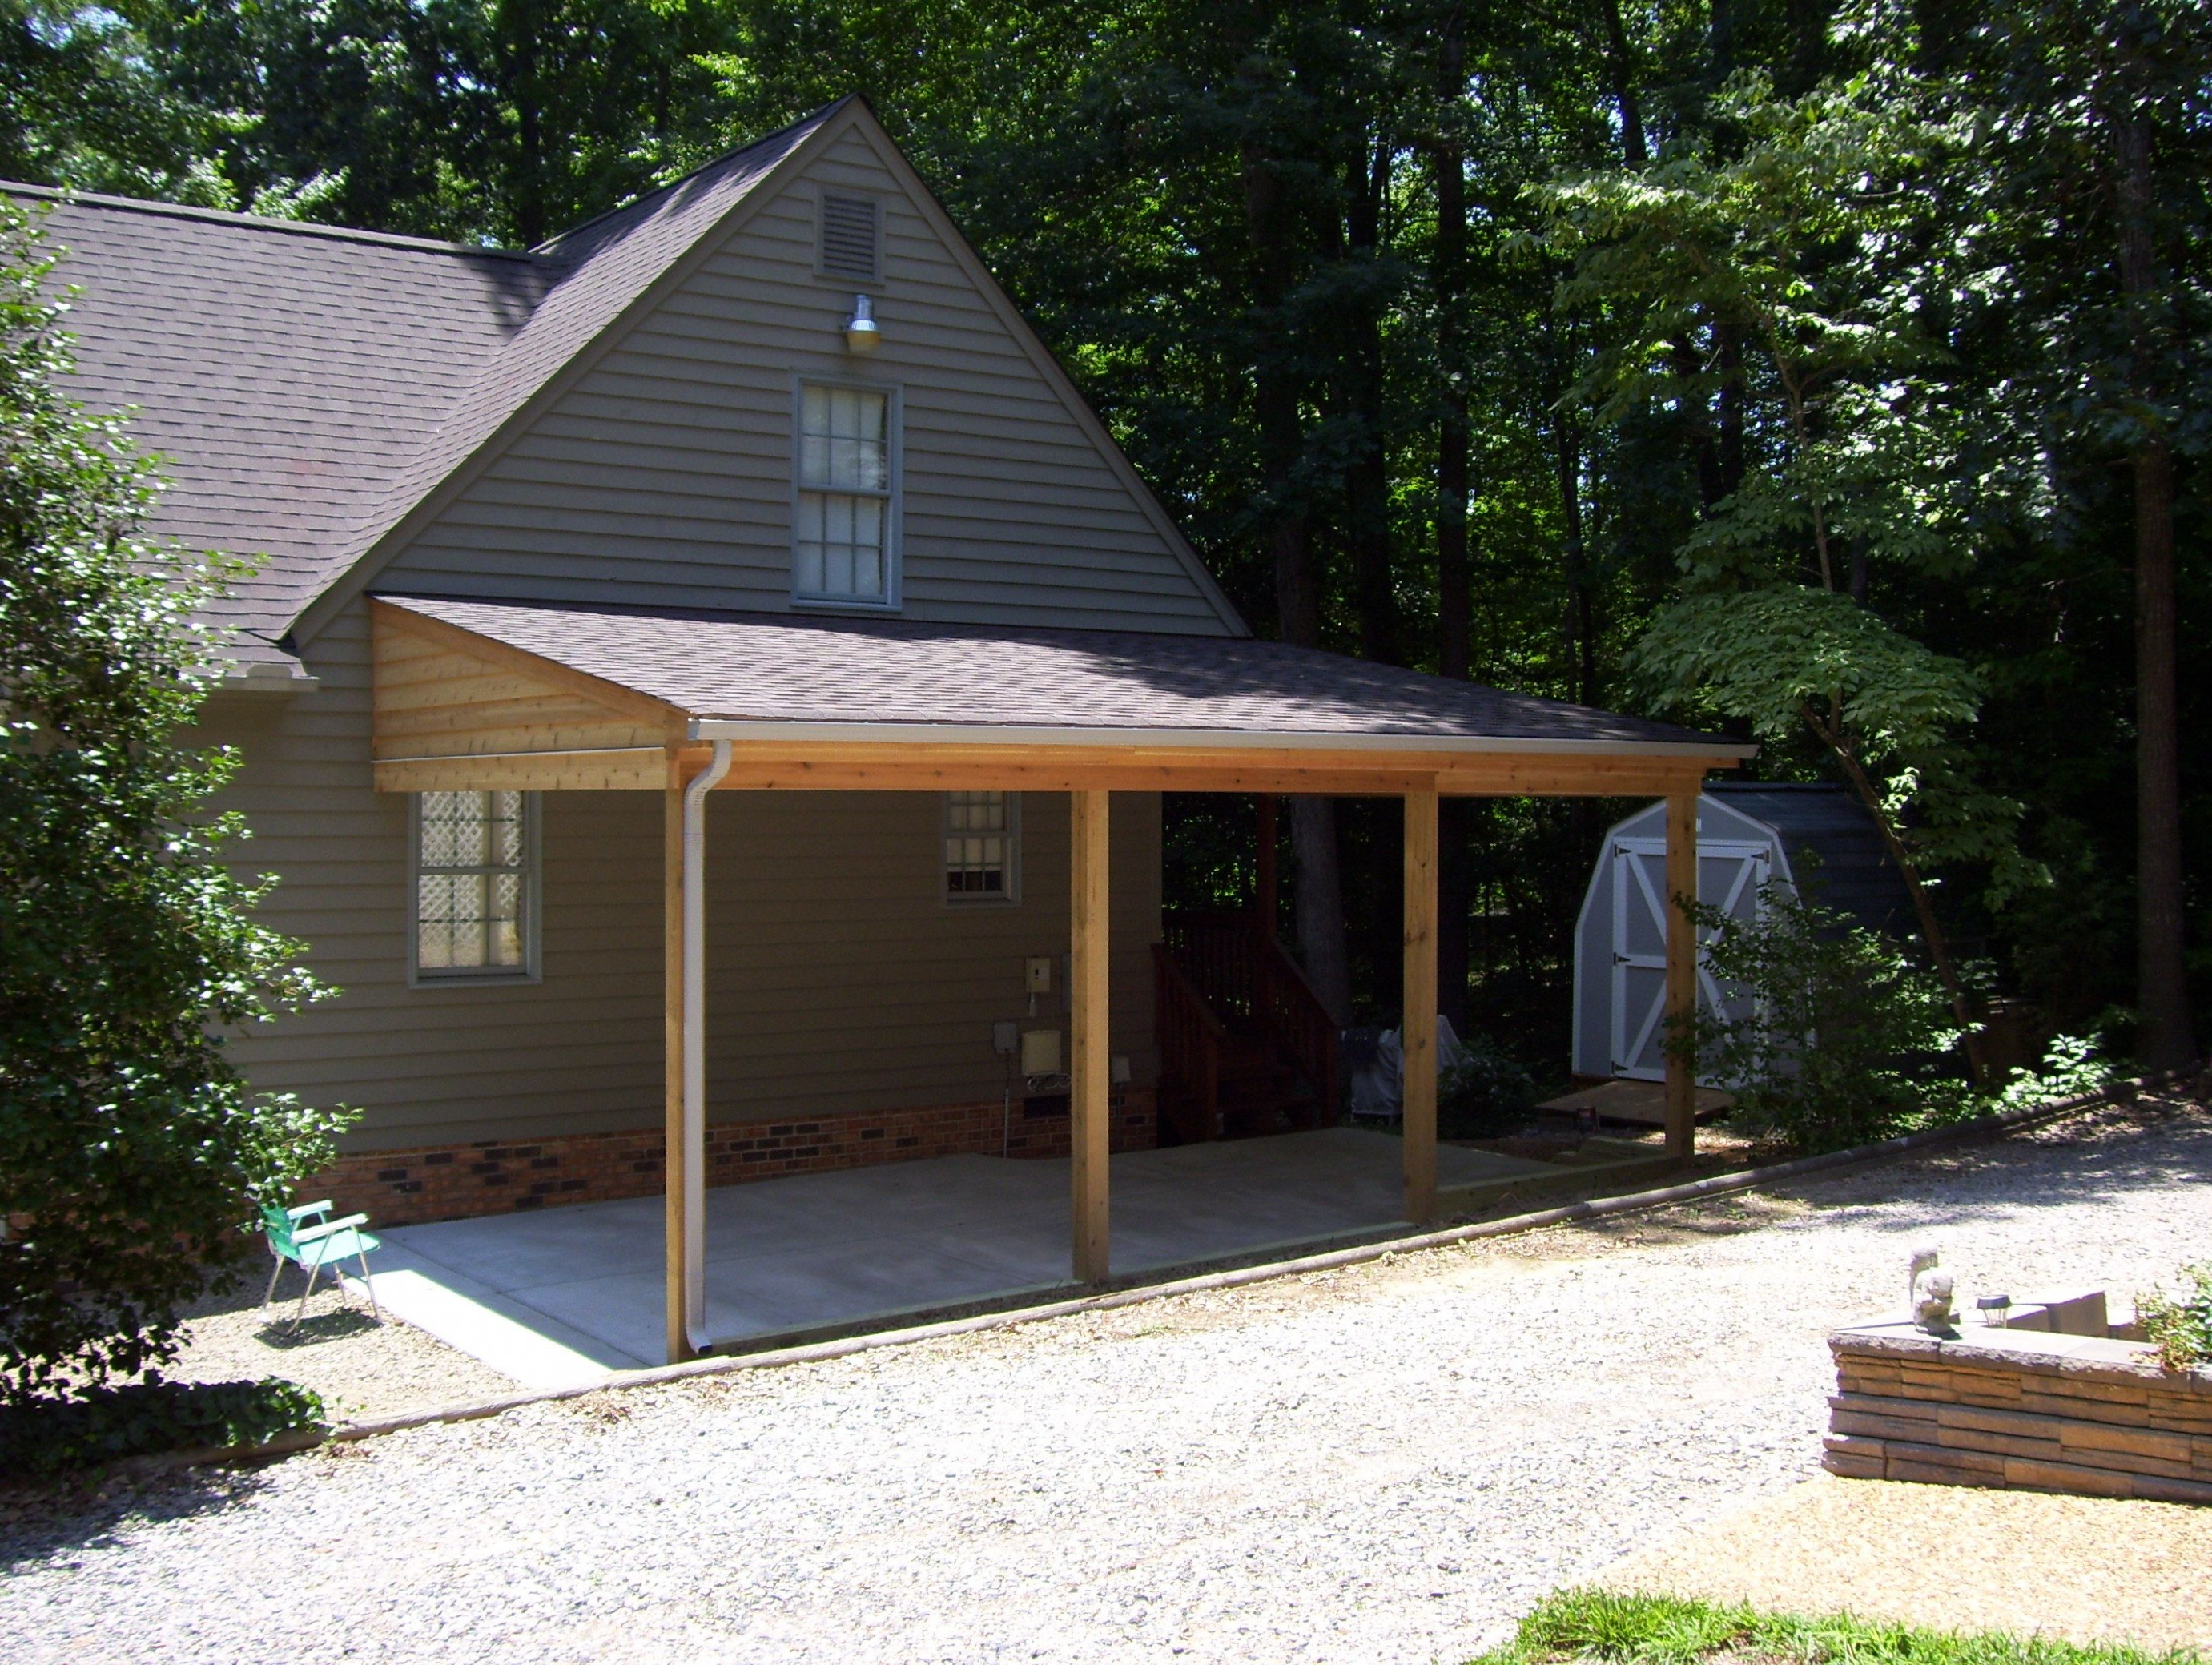 Attached Carport Photos | House Remodel In 2019 | Carport ..